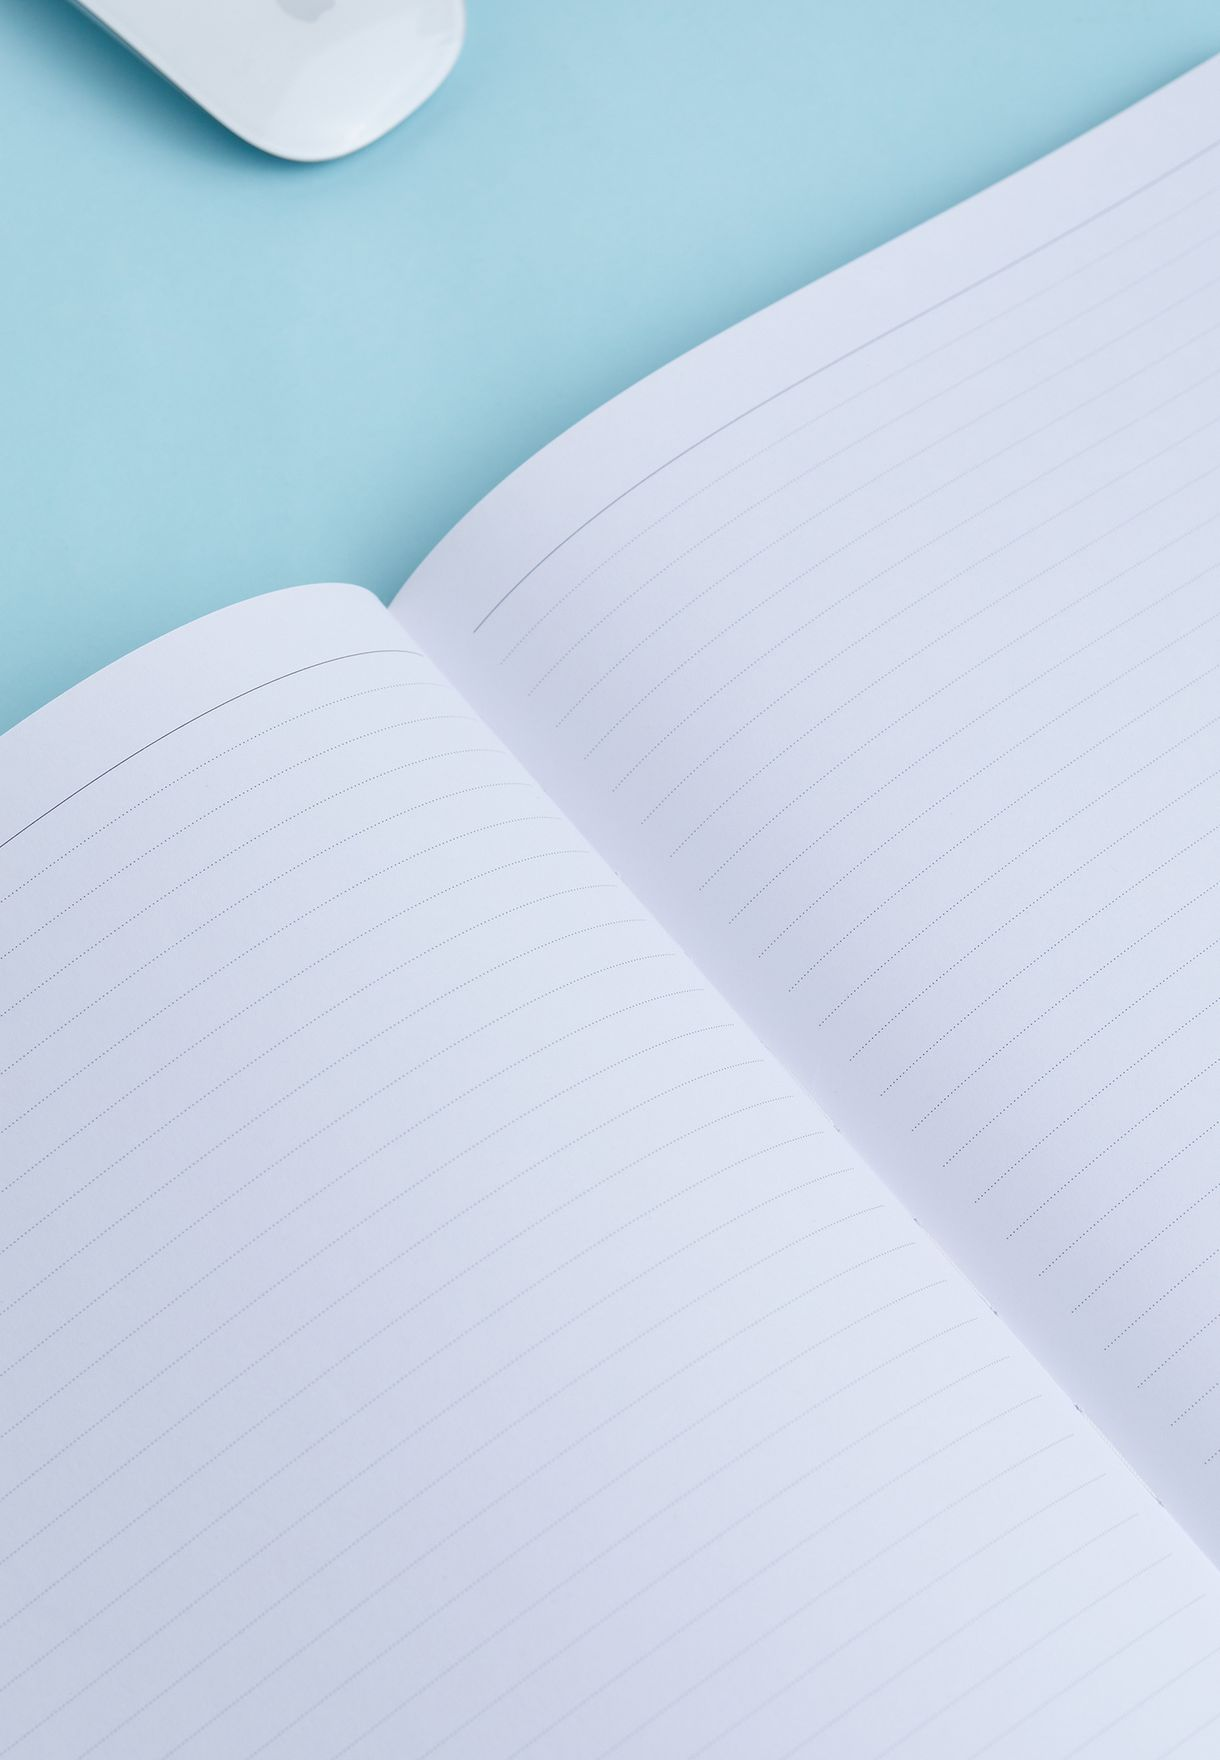 A4 Bonded Leather Journal Inspiration